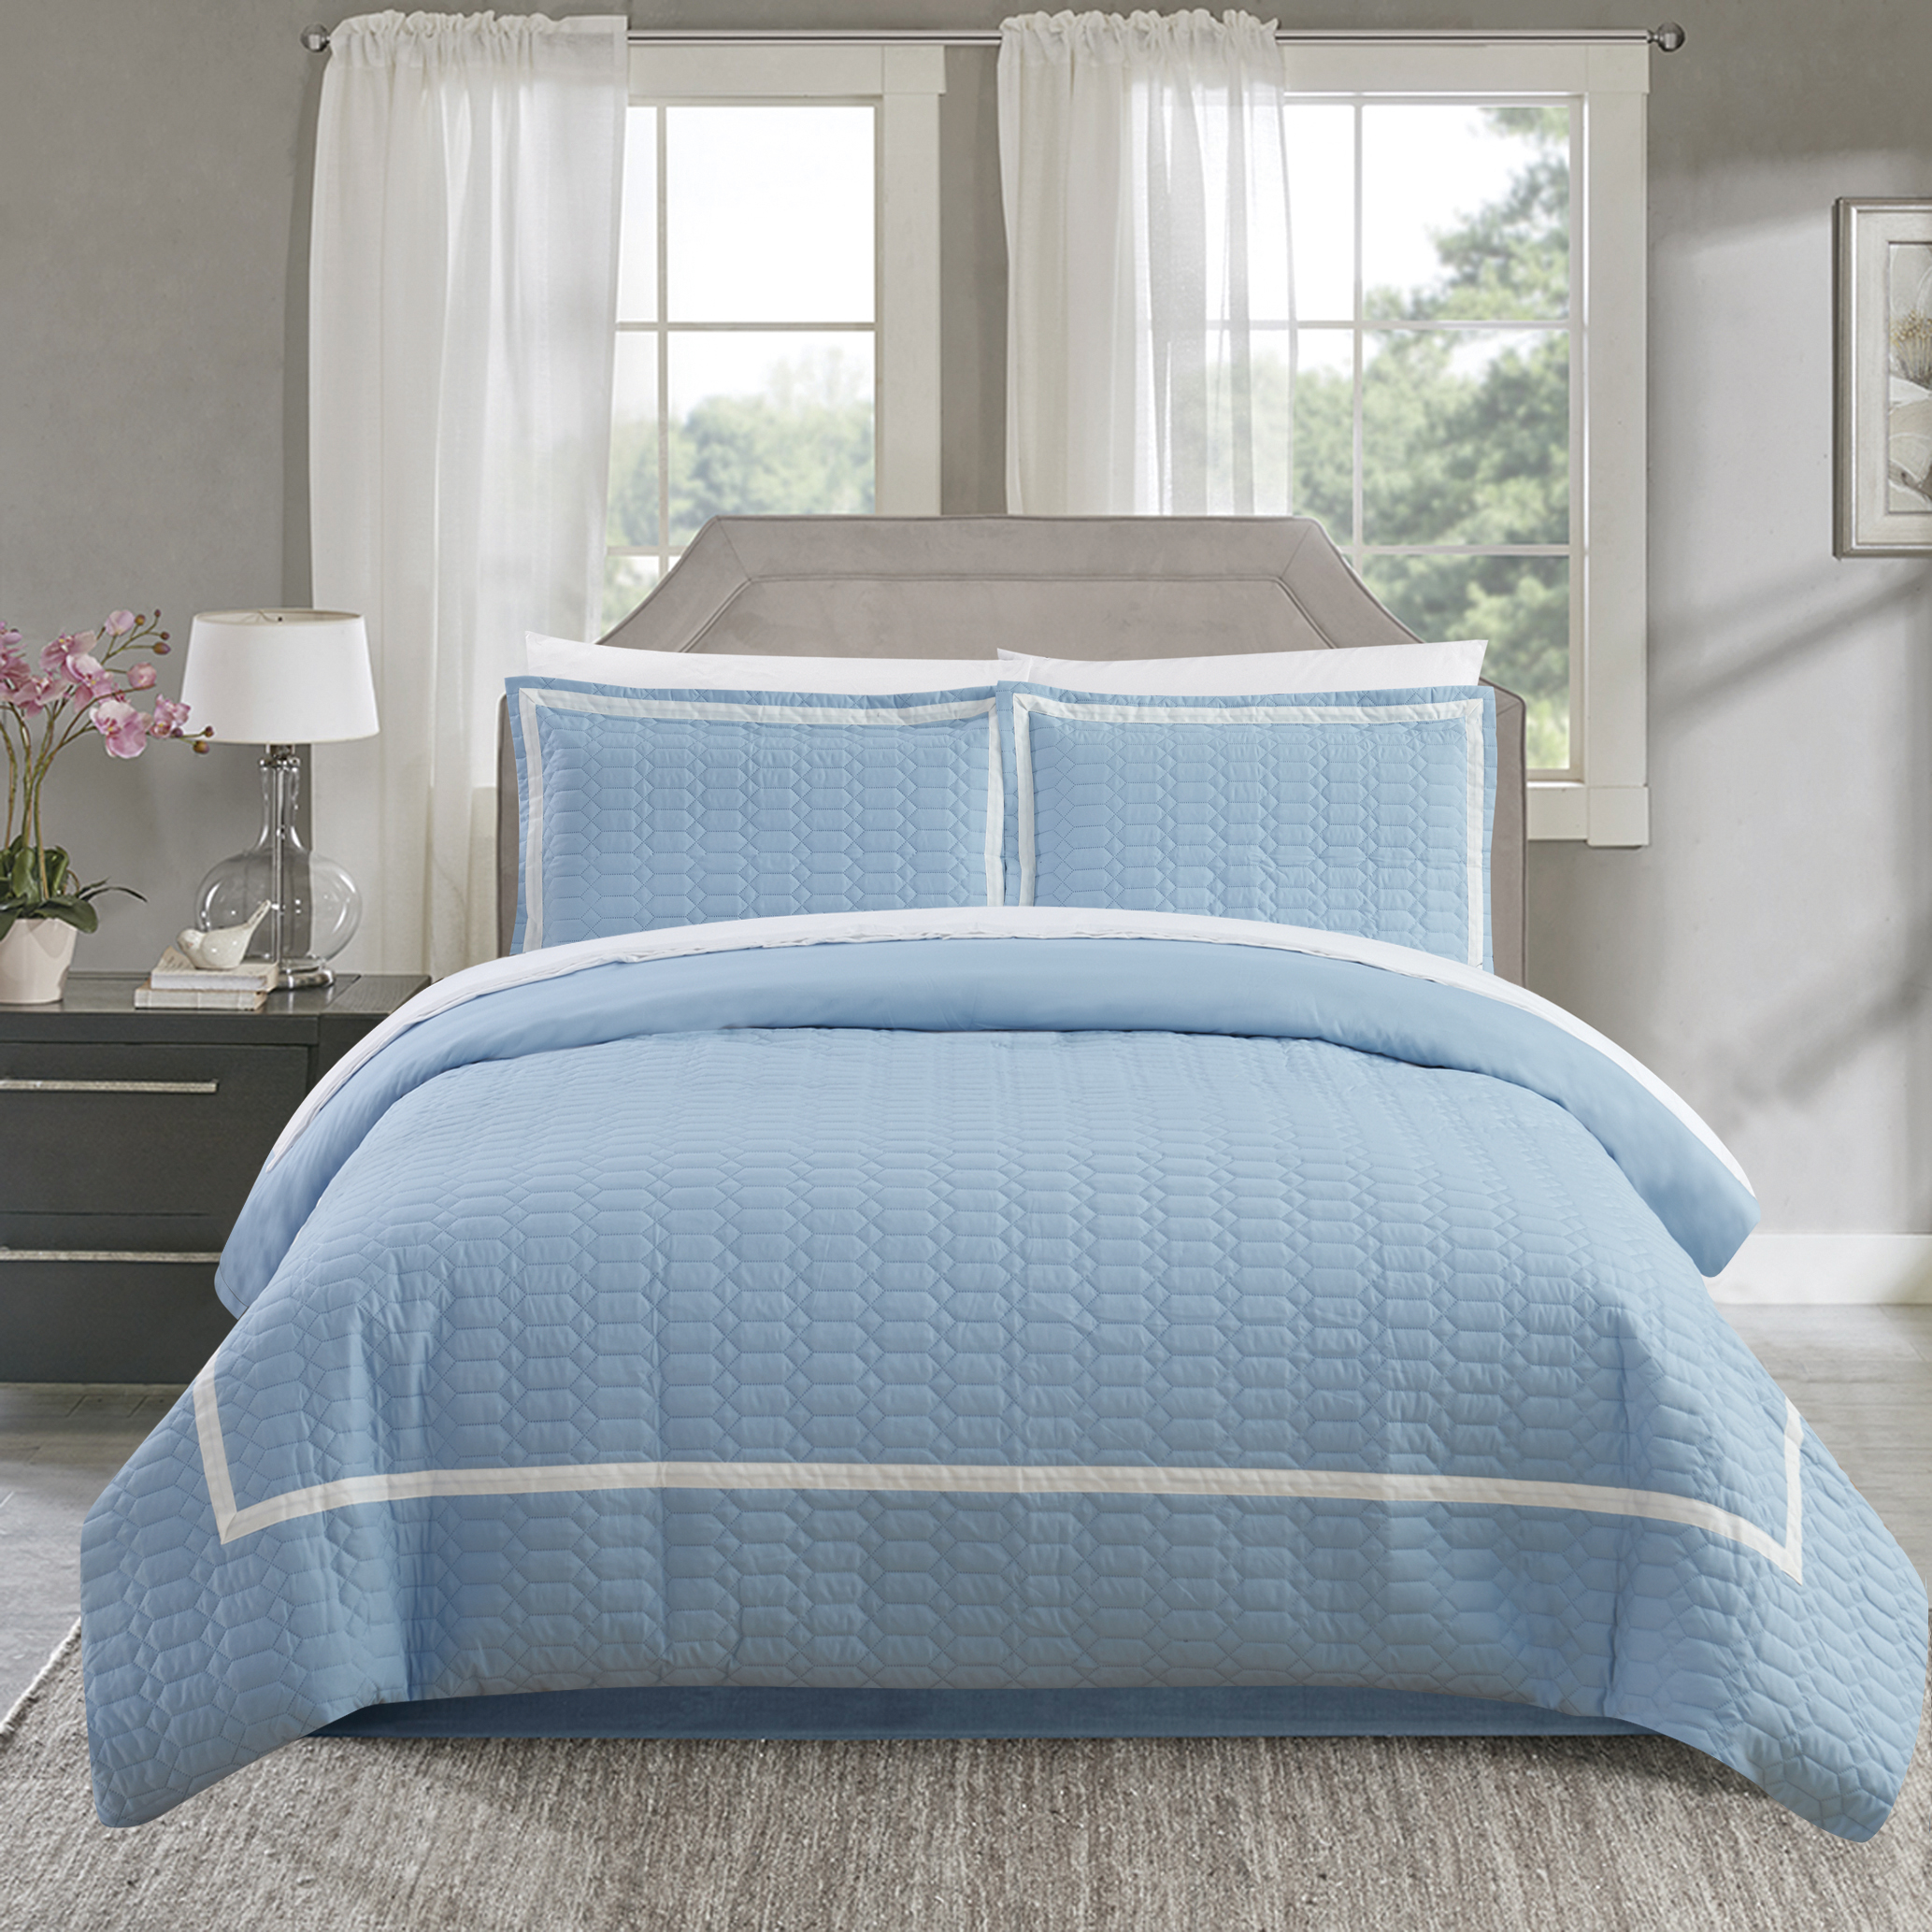 Chic Home Krystel 3 Piece Duvet Cover Set Hotel Collection Two Tone Banded Print Zipper Closure Bedding - Decorative Pillow Shams Included, King Blue